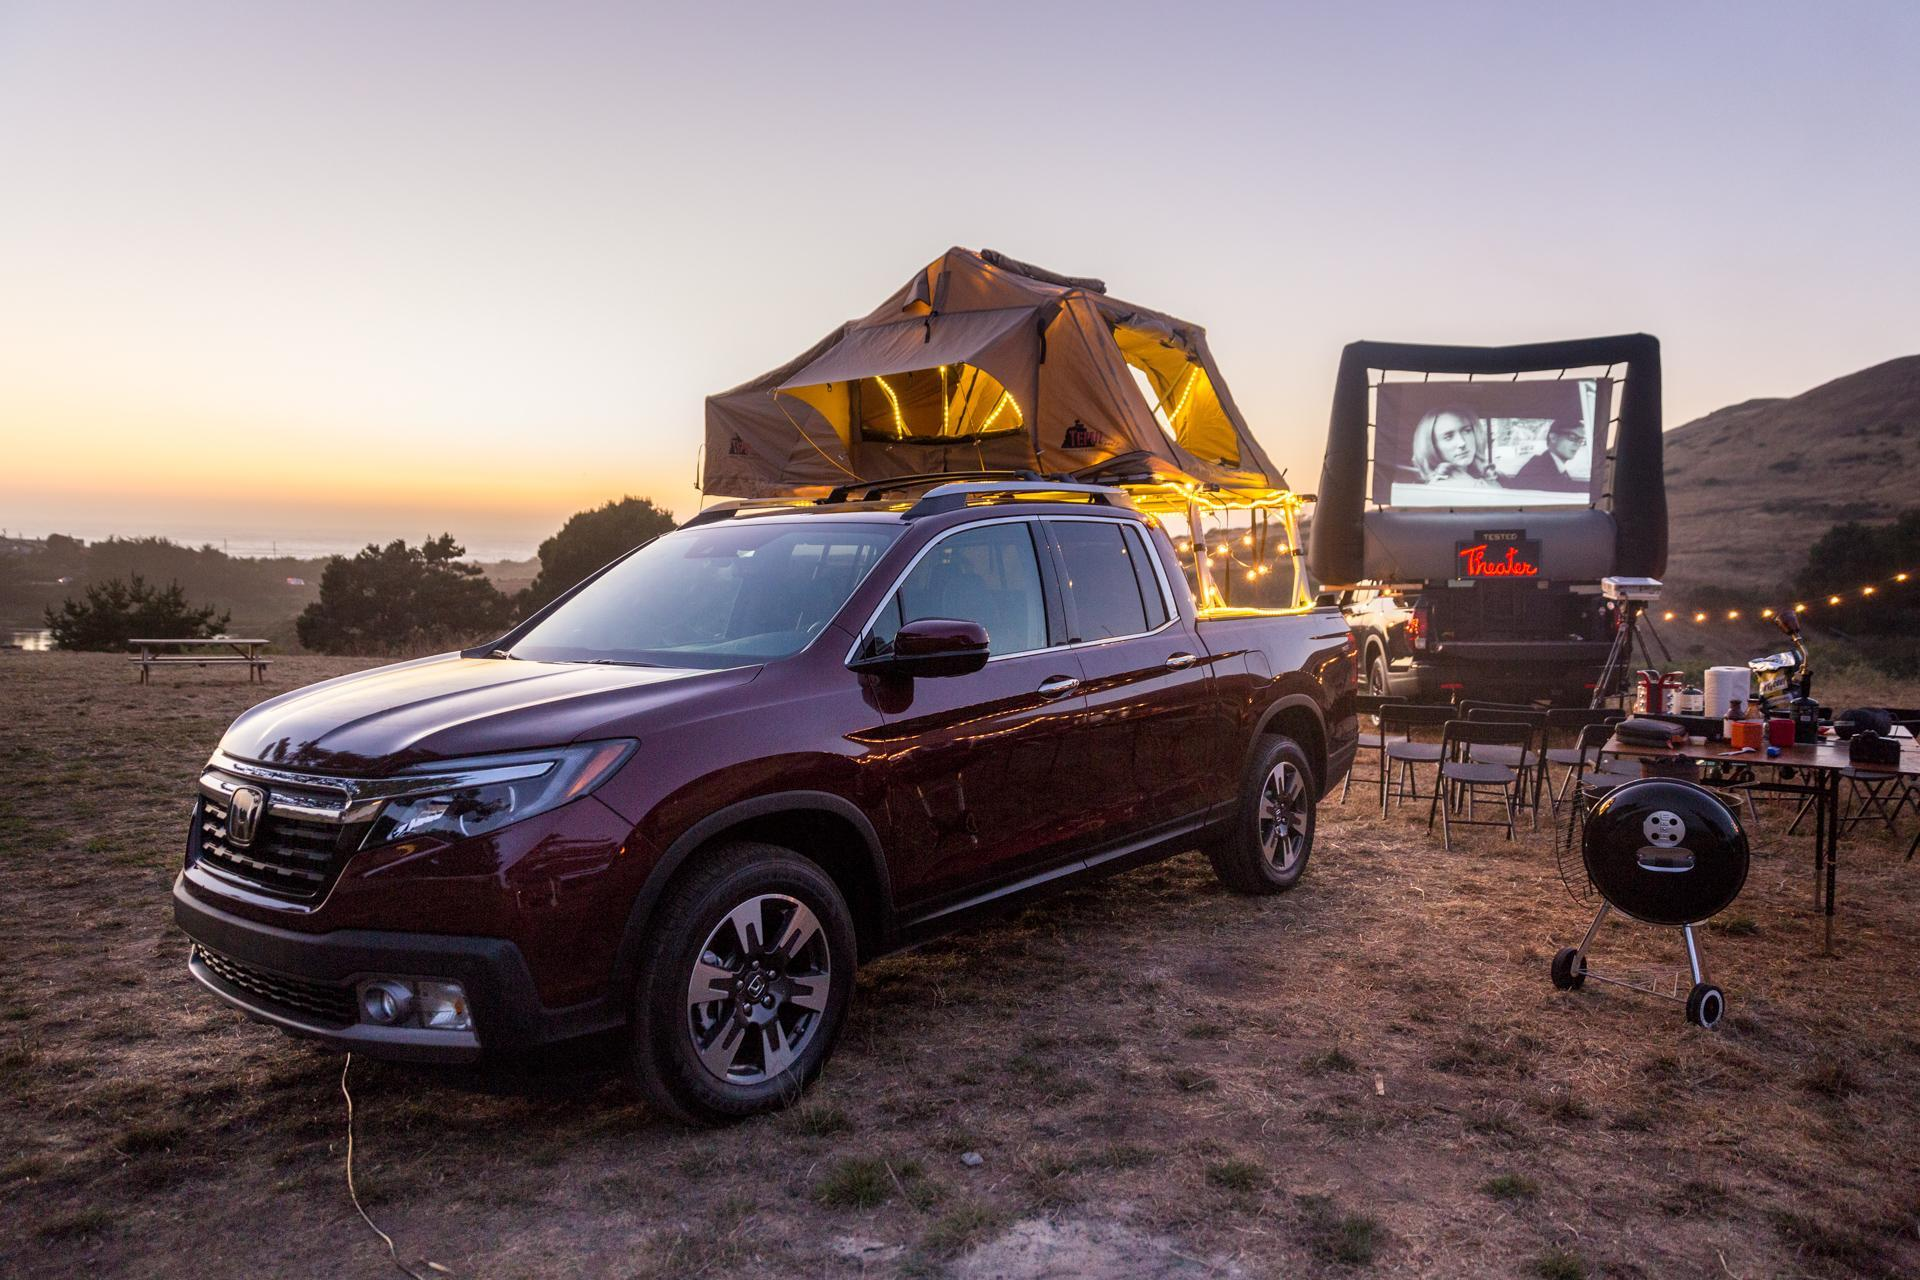 2017 Slidell Area Honda Ridgeline Boat Towing With